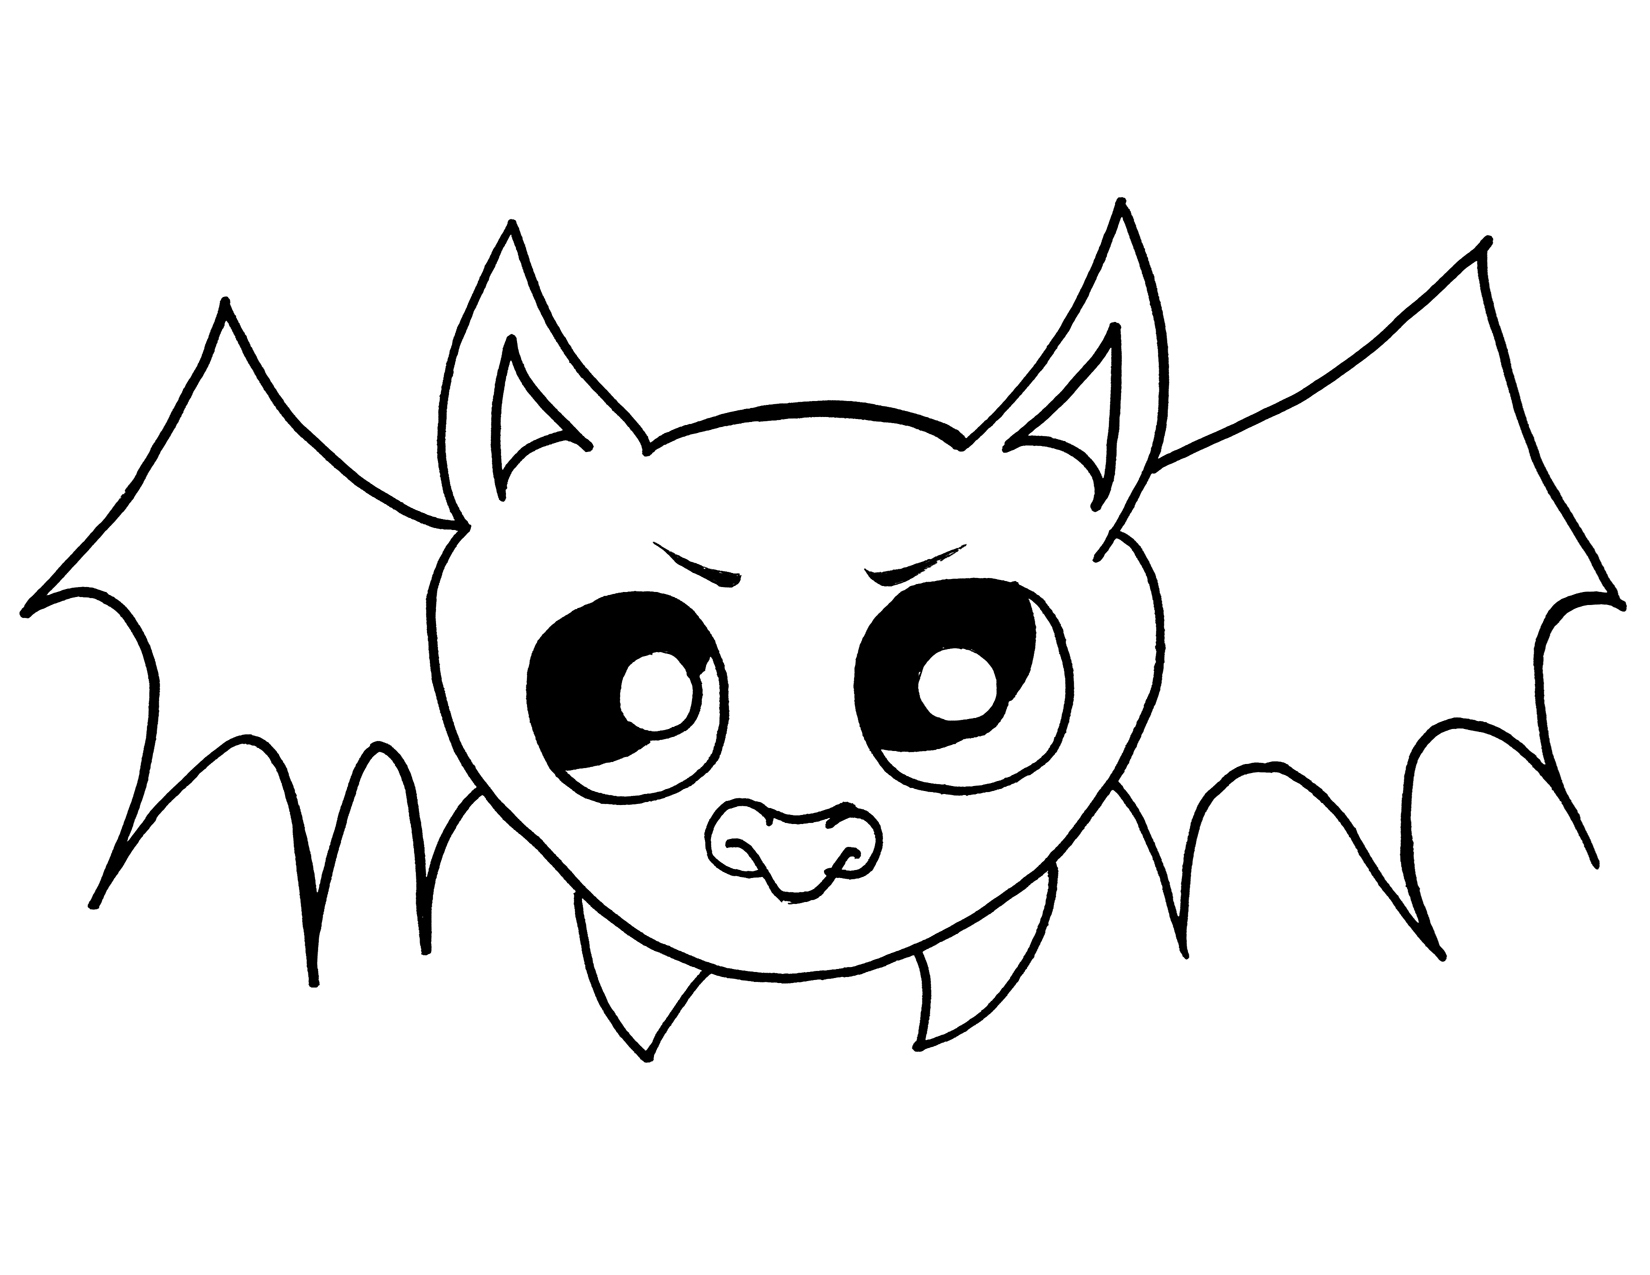 1650x1275 Halloween Bat Drawings Festival Collections